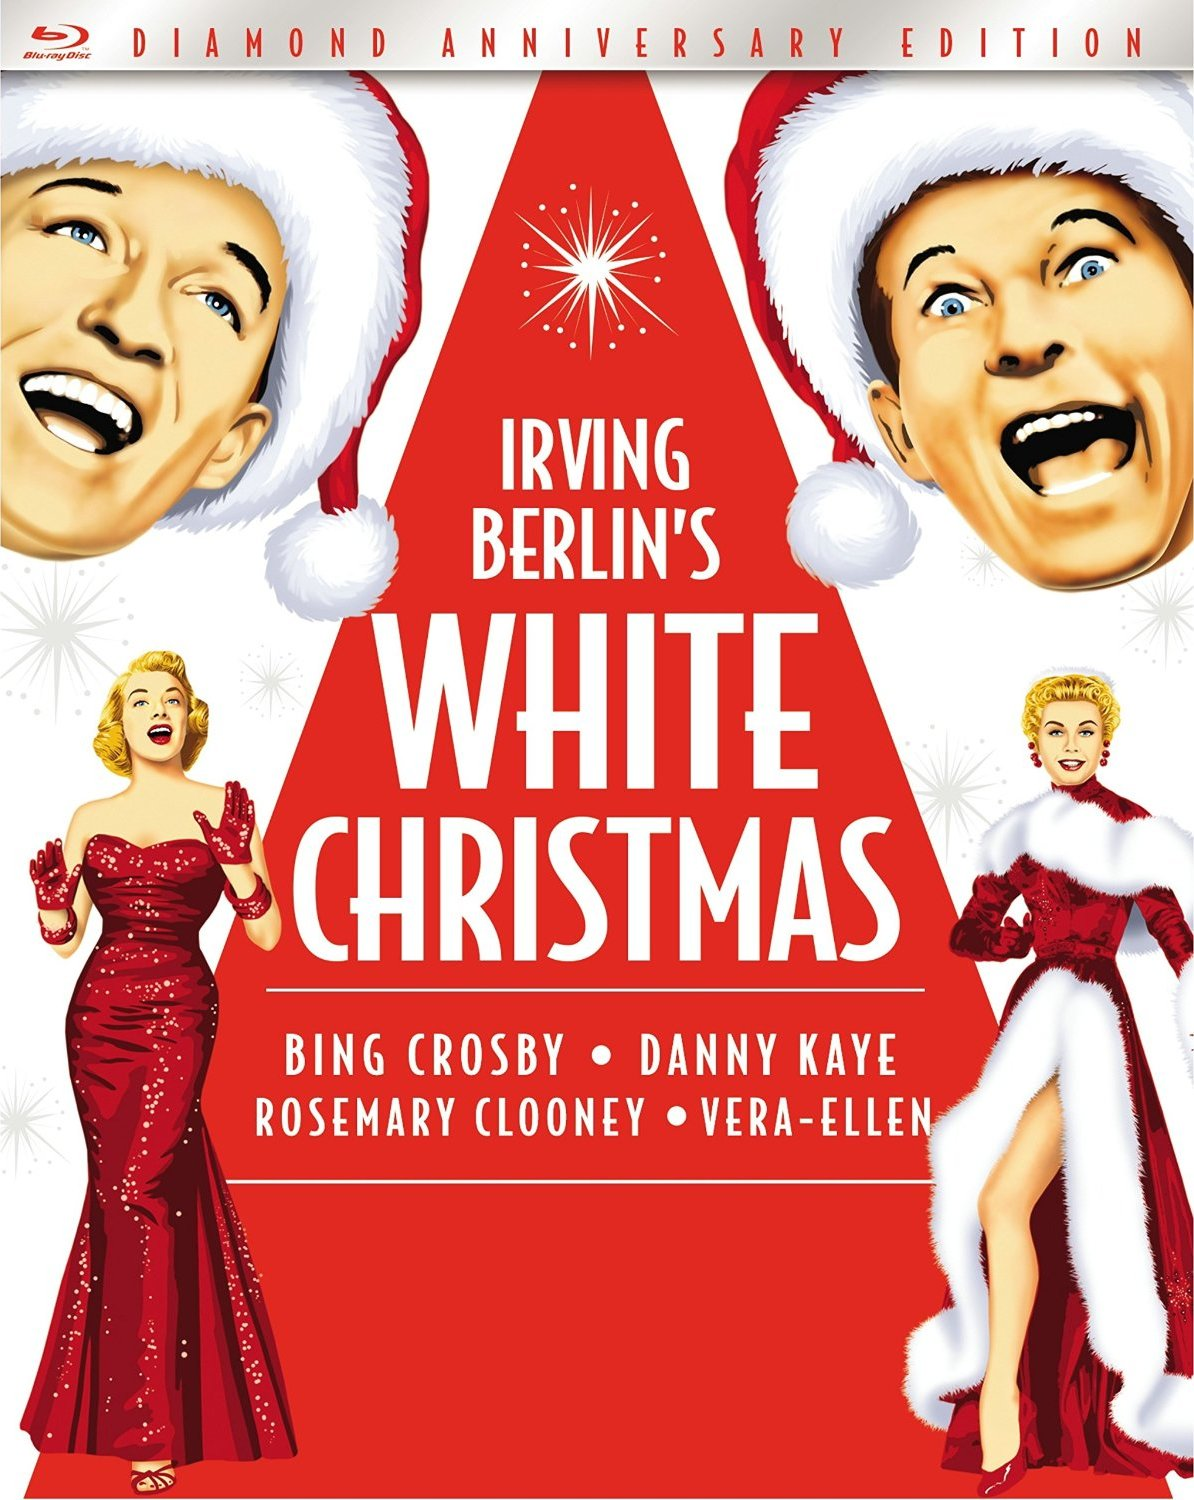 The Cast Of White Christmas.Blu Ray Release White Christmas One Movie Our Views